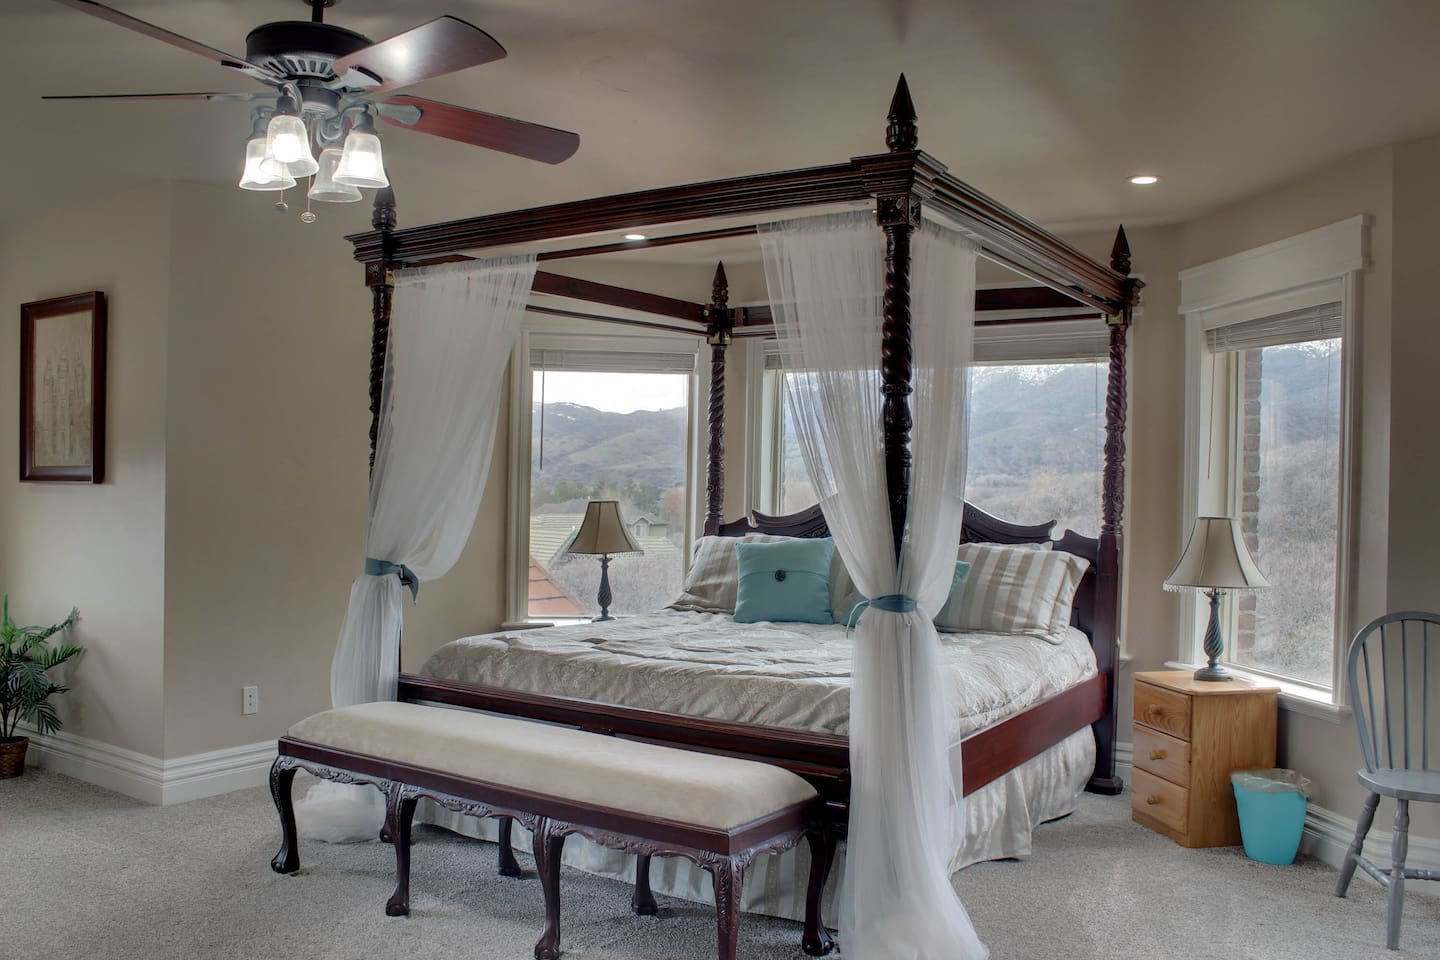 Master bedroom on the top floor with beautiful views of Lone Peak and surrounding hillsides and Alpine.